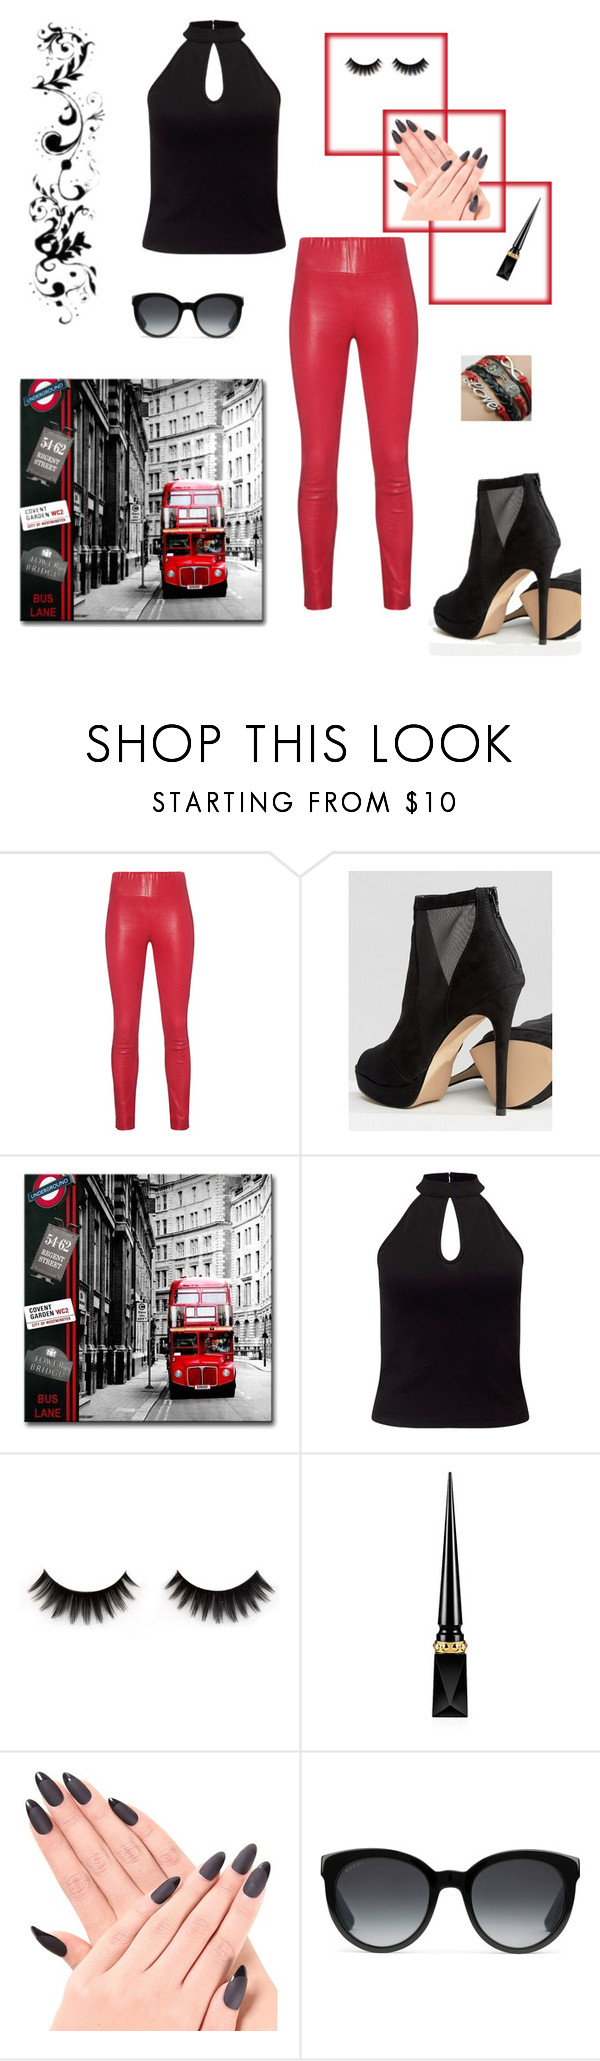 """Untitled #110"" by csarm61364 ❤ liked on Polyvore featuring SPRWMN, ALDO, Miss Selfridge, Christian Louboutin and Gucci"